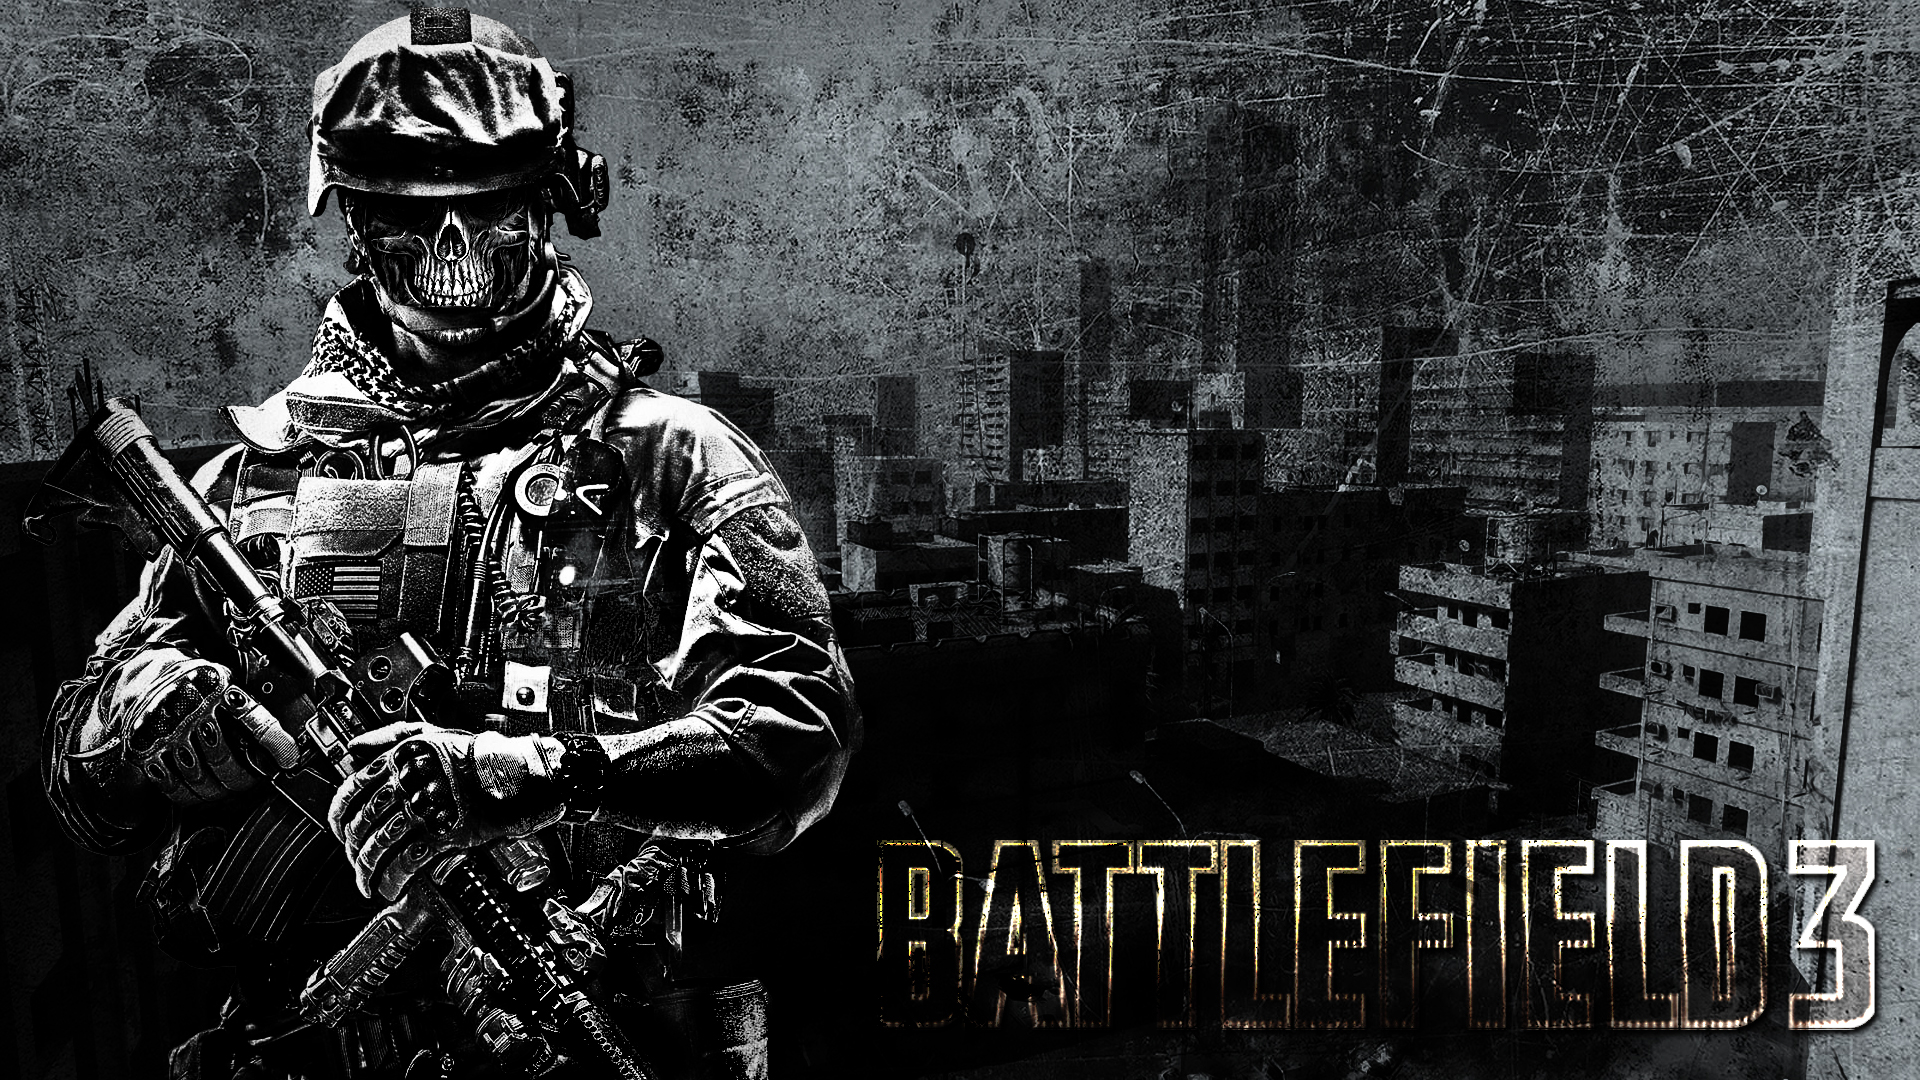 battlefield 3 pc wallpapers - photo #38